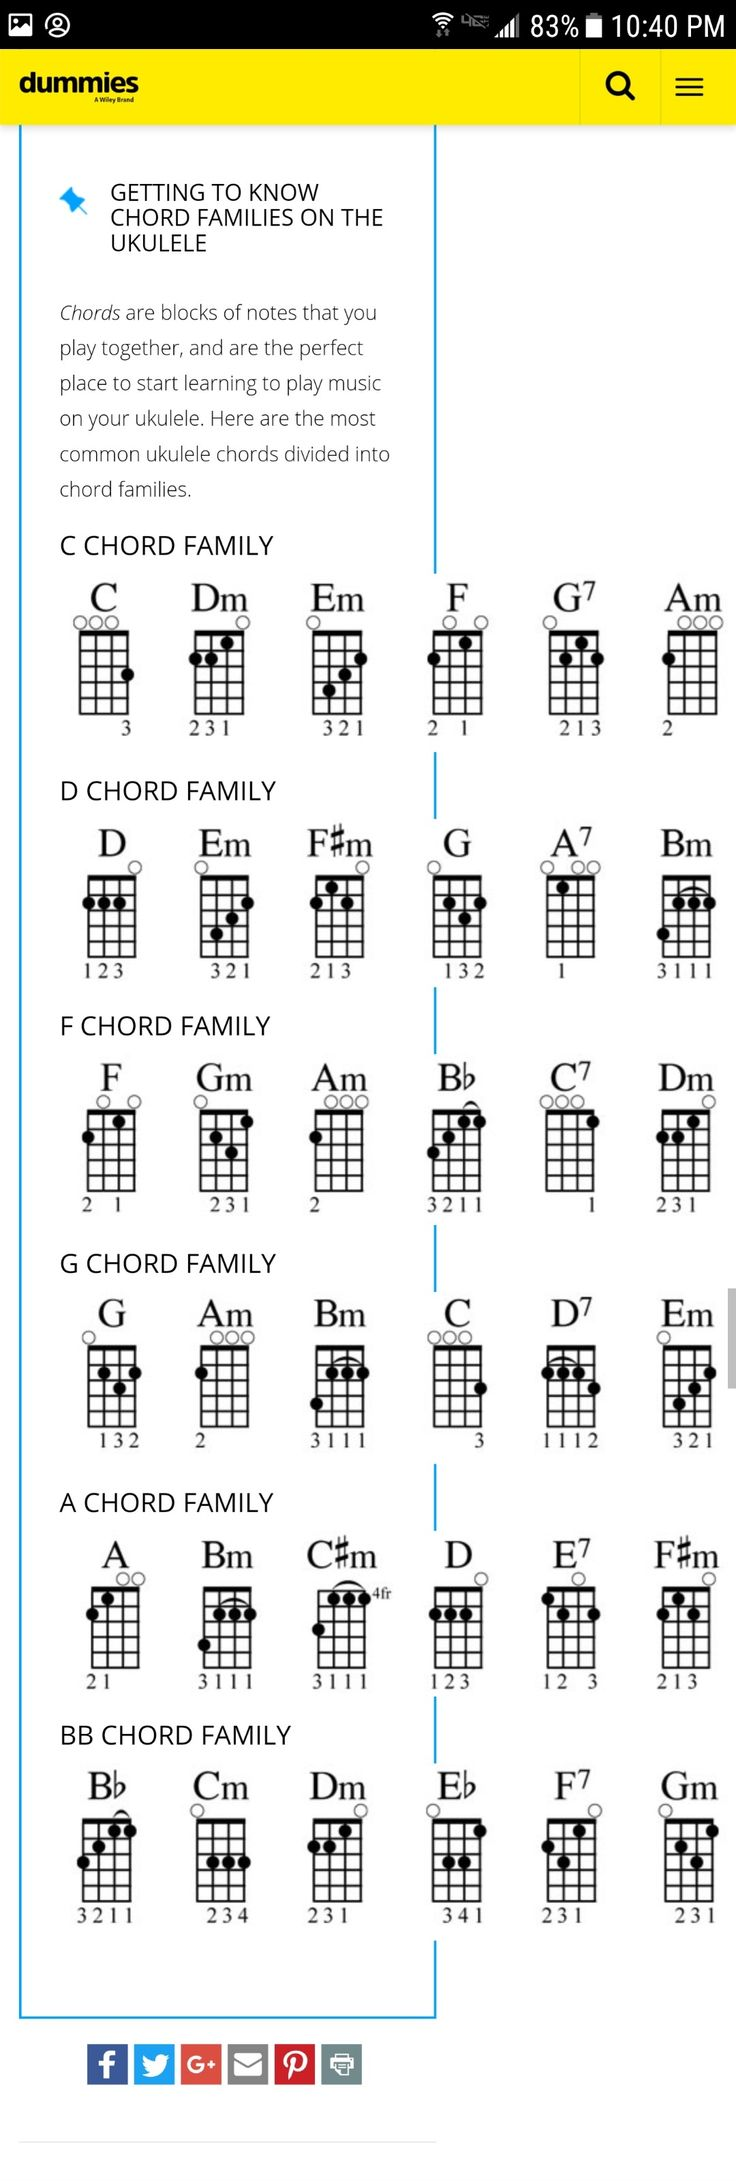 243 best ukulele easy chords images on pinterest music ukulele chord families ukulele for dummies hexwebz Image collections